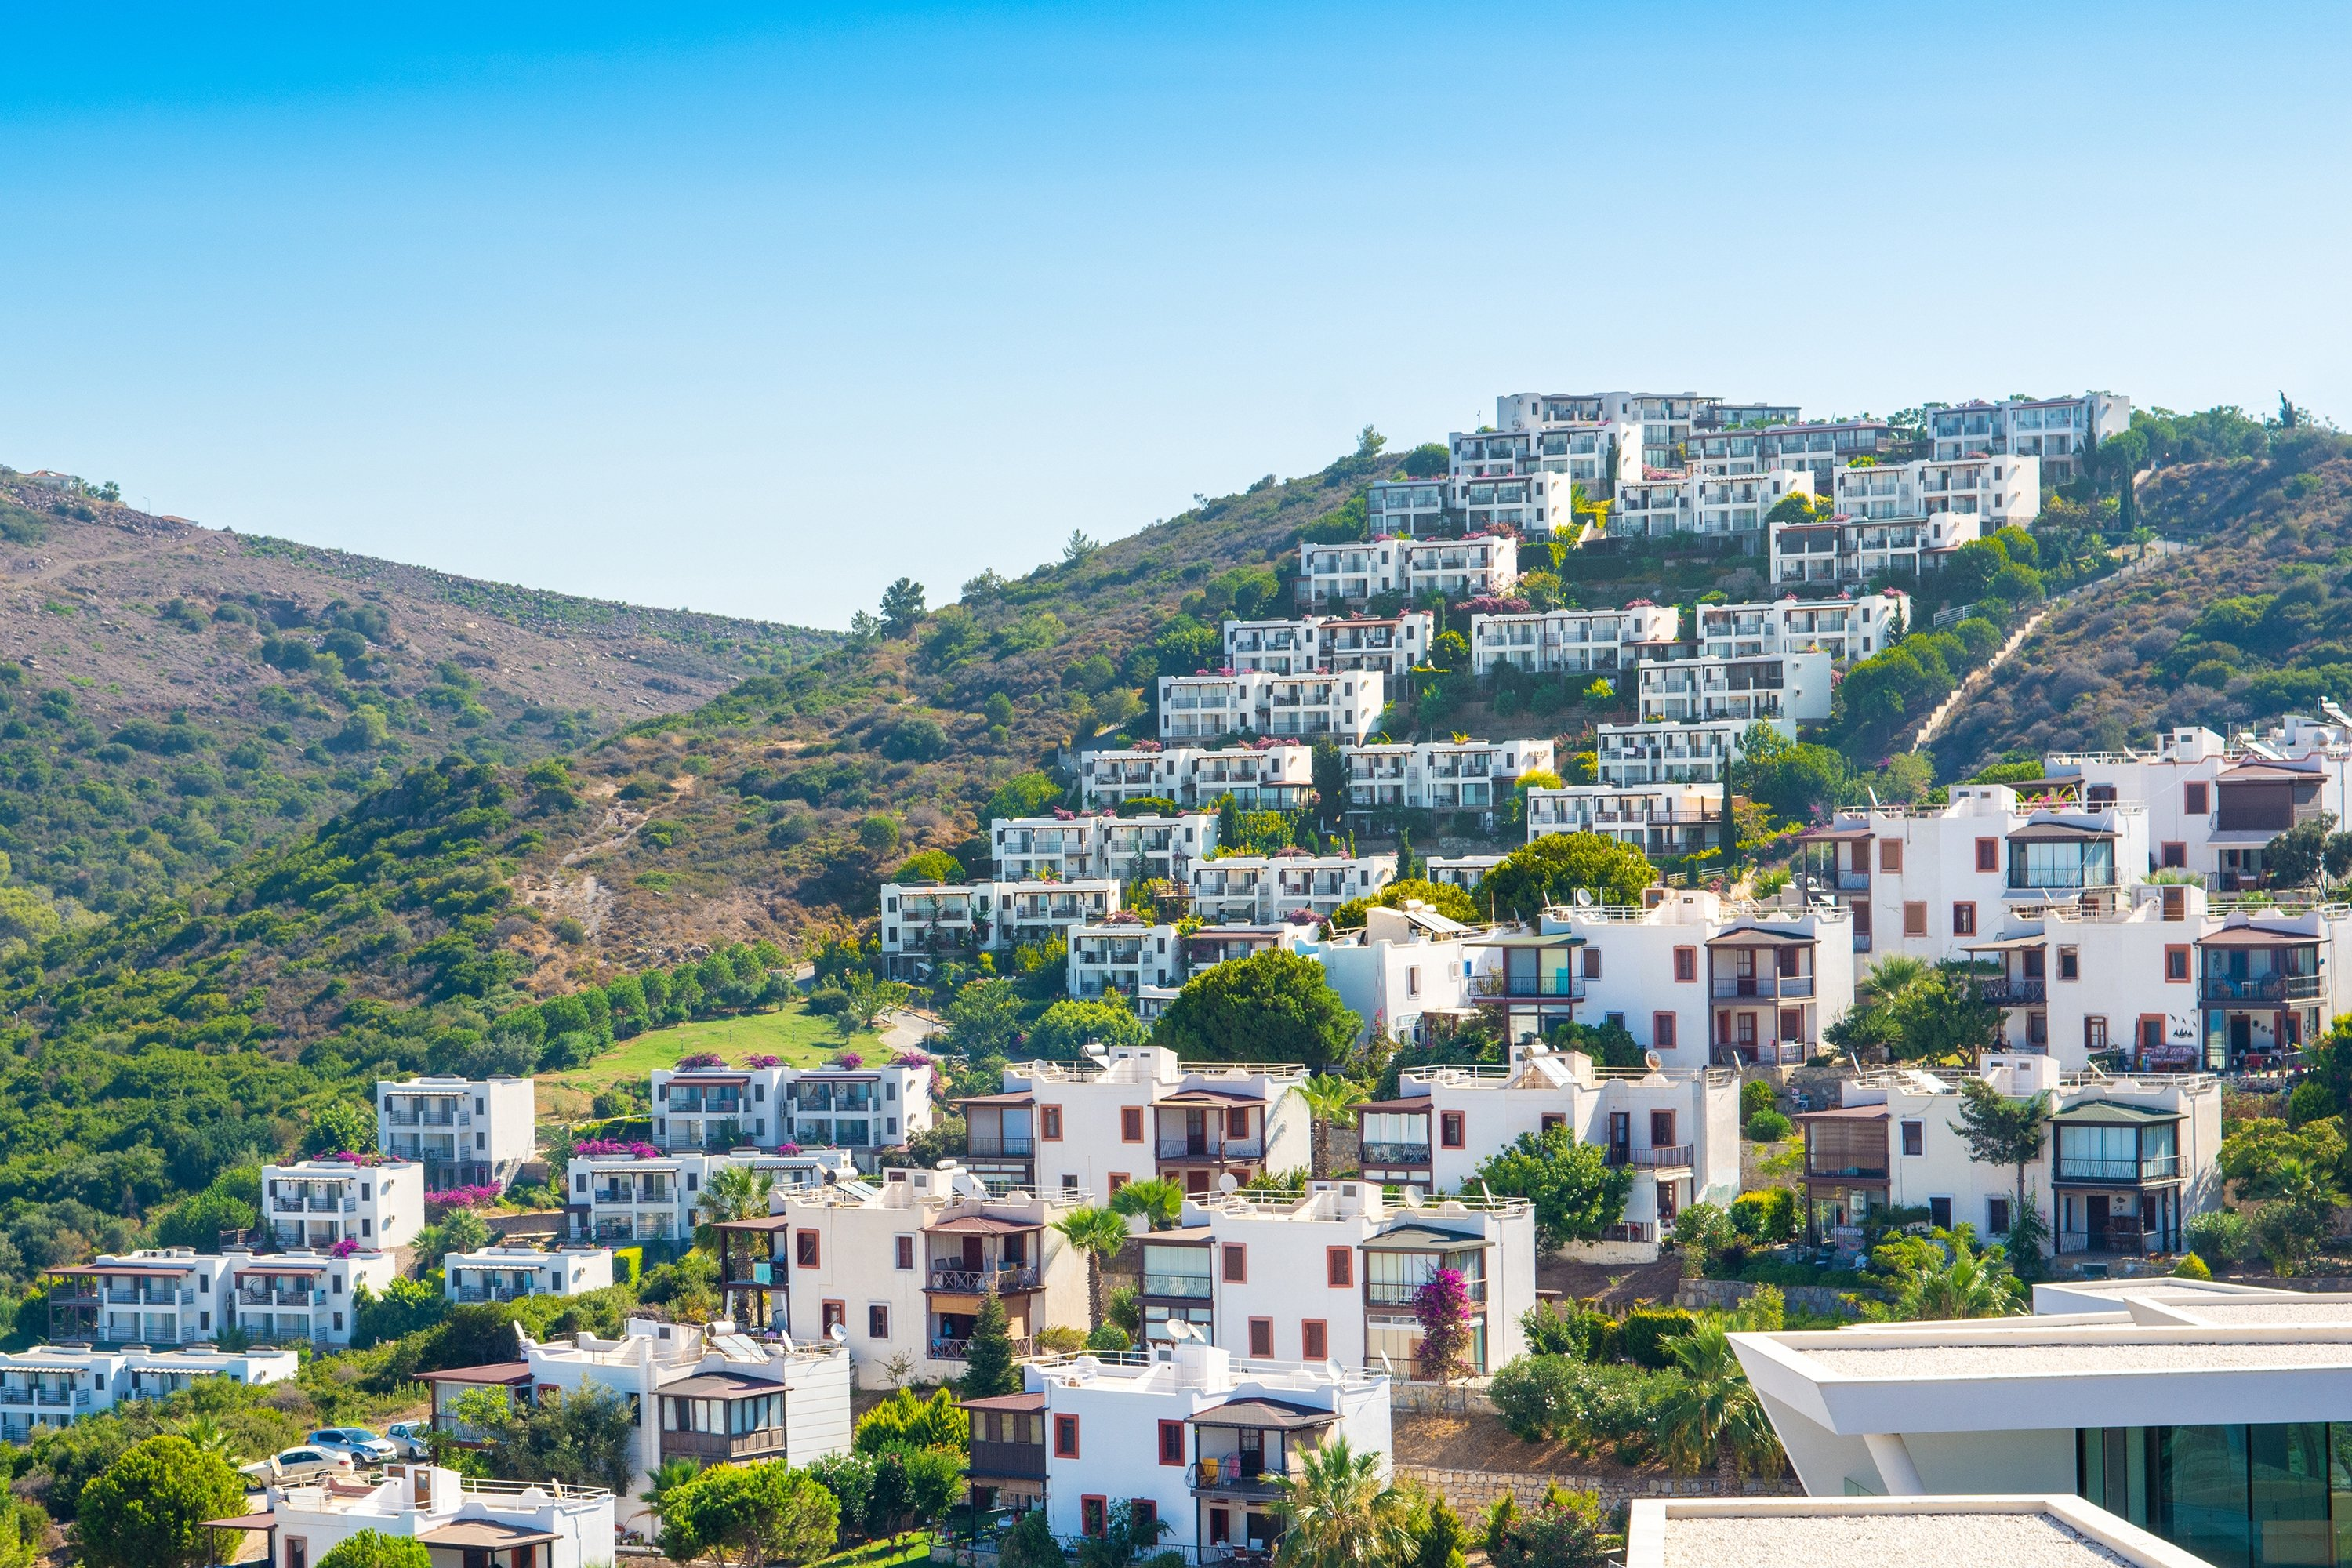 Whether you are renting a holiday home or looking for somewhere year-round, make sure you do thorough research. (Shutterstock Photo)